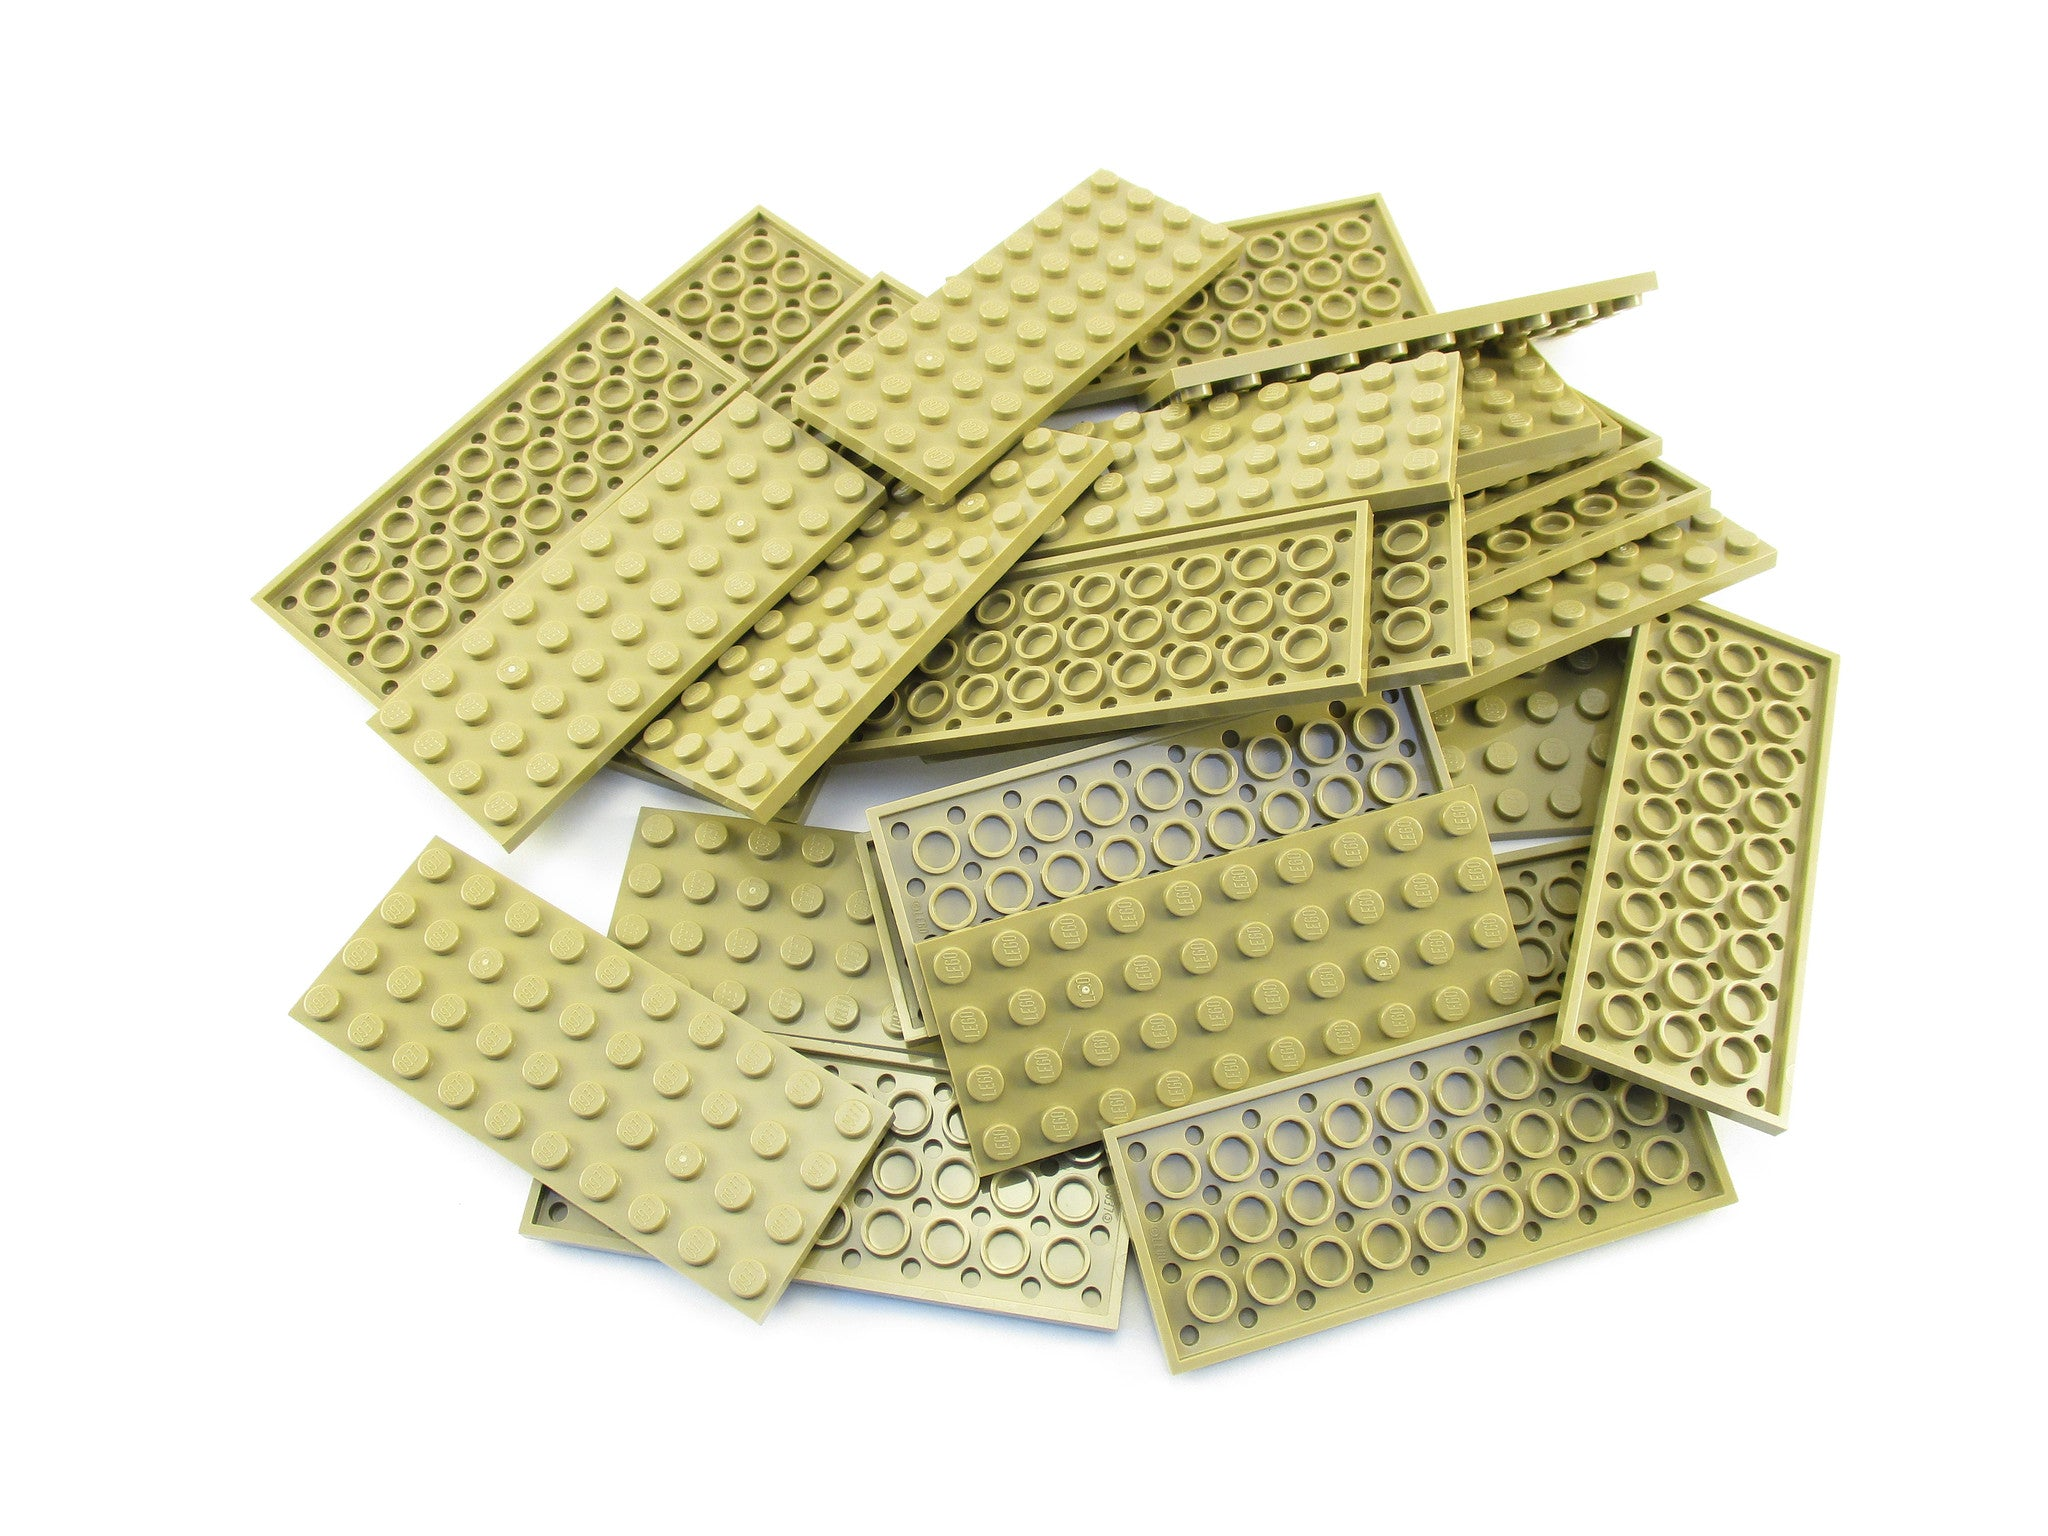 LEGO Dark Tan Plate 4x10 Lot of 25 Parts Pieces 3030